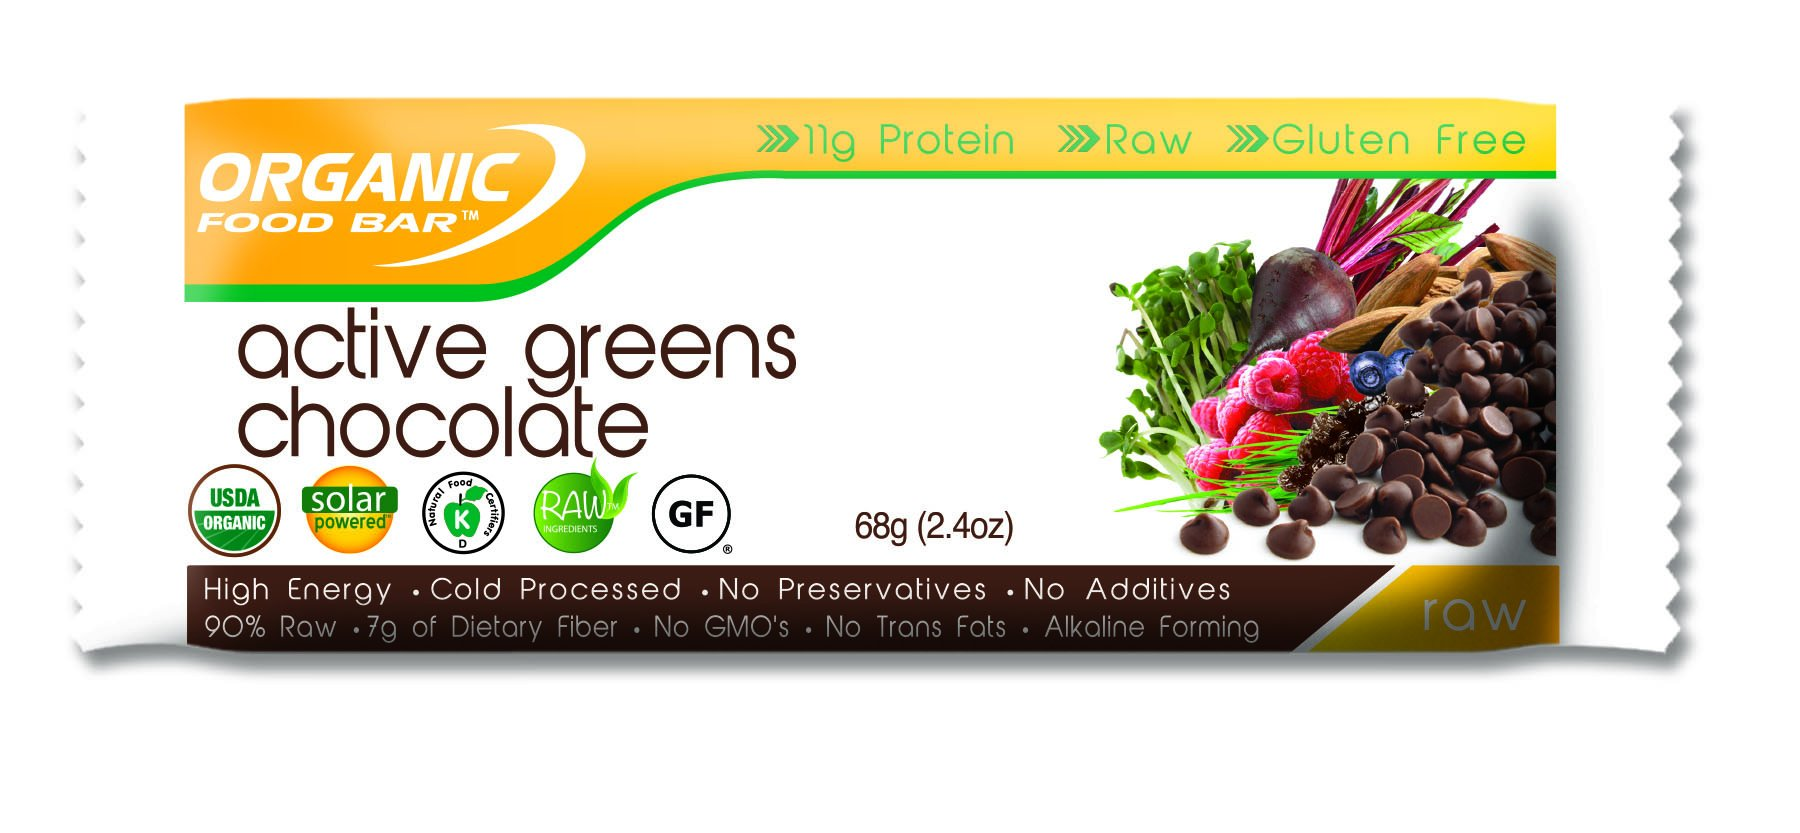 Organic Food Bar - Active Greens Chocolate Bars, USDA Organic Active Greens Bar with Superfood Blend with Powerful Antioxidants (Pack of 12, 2.3 oz) by Organic Food Bar